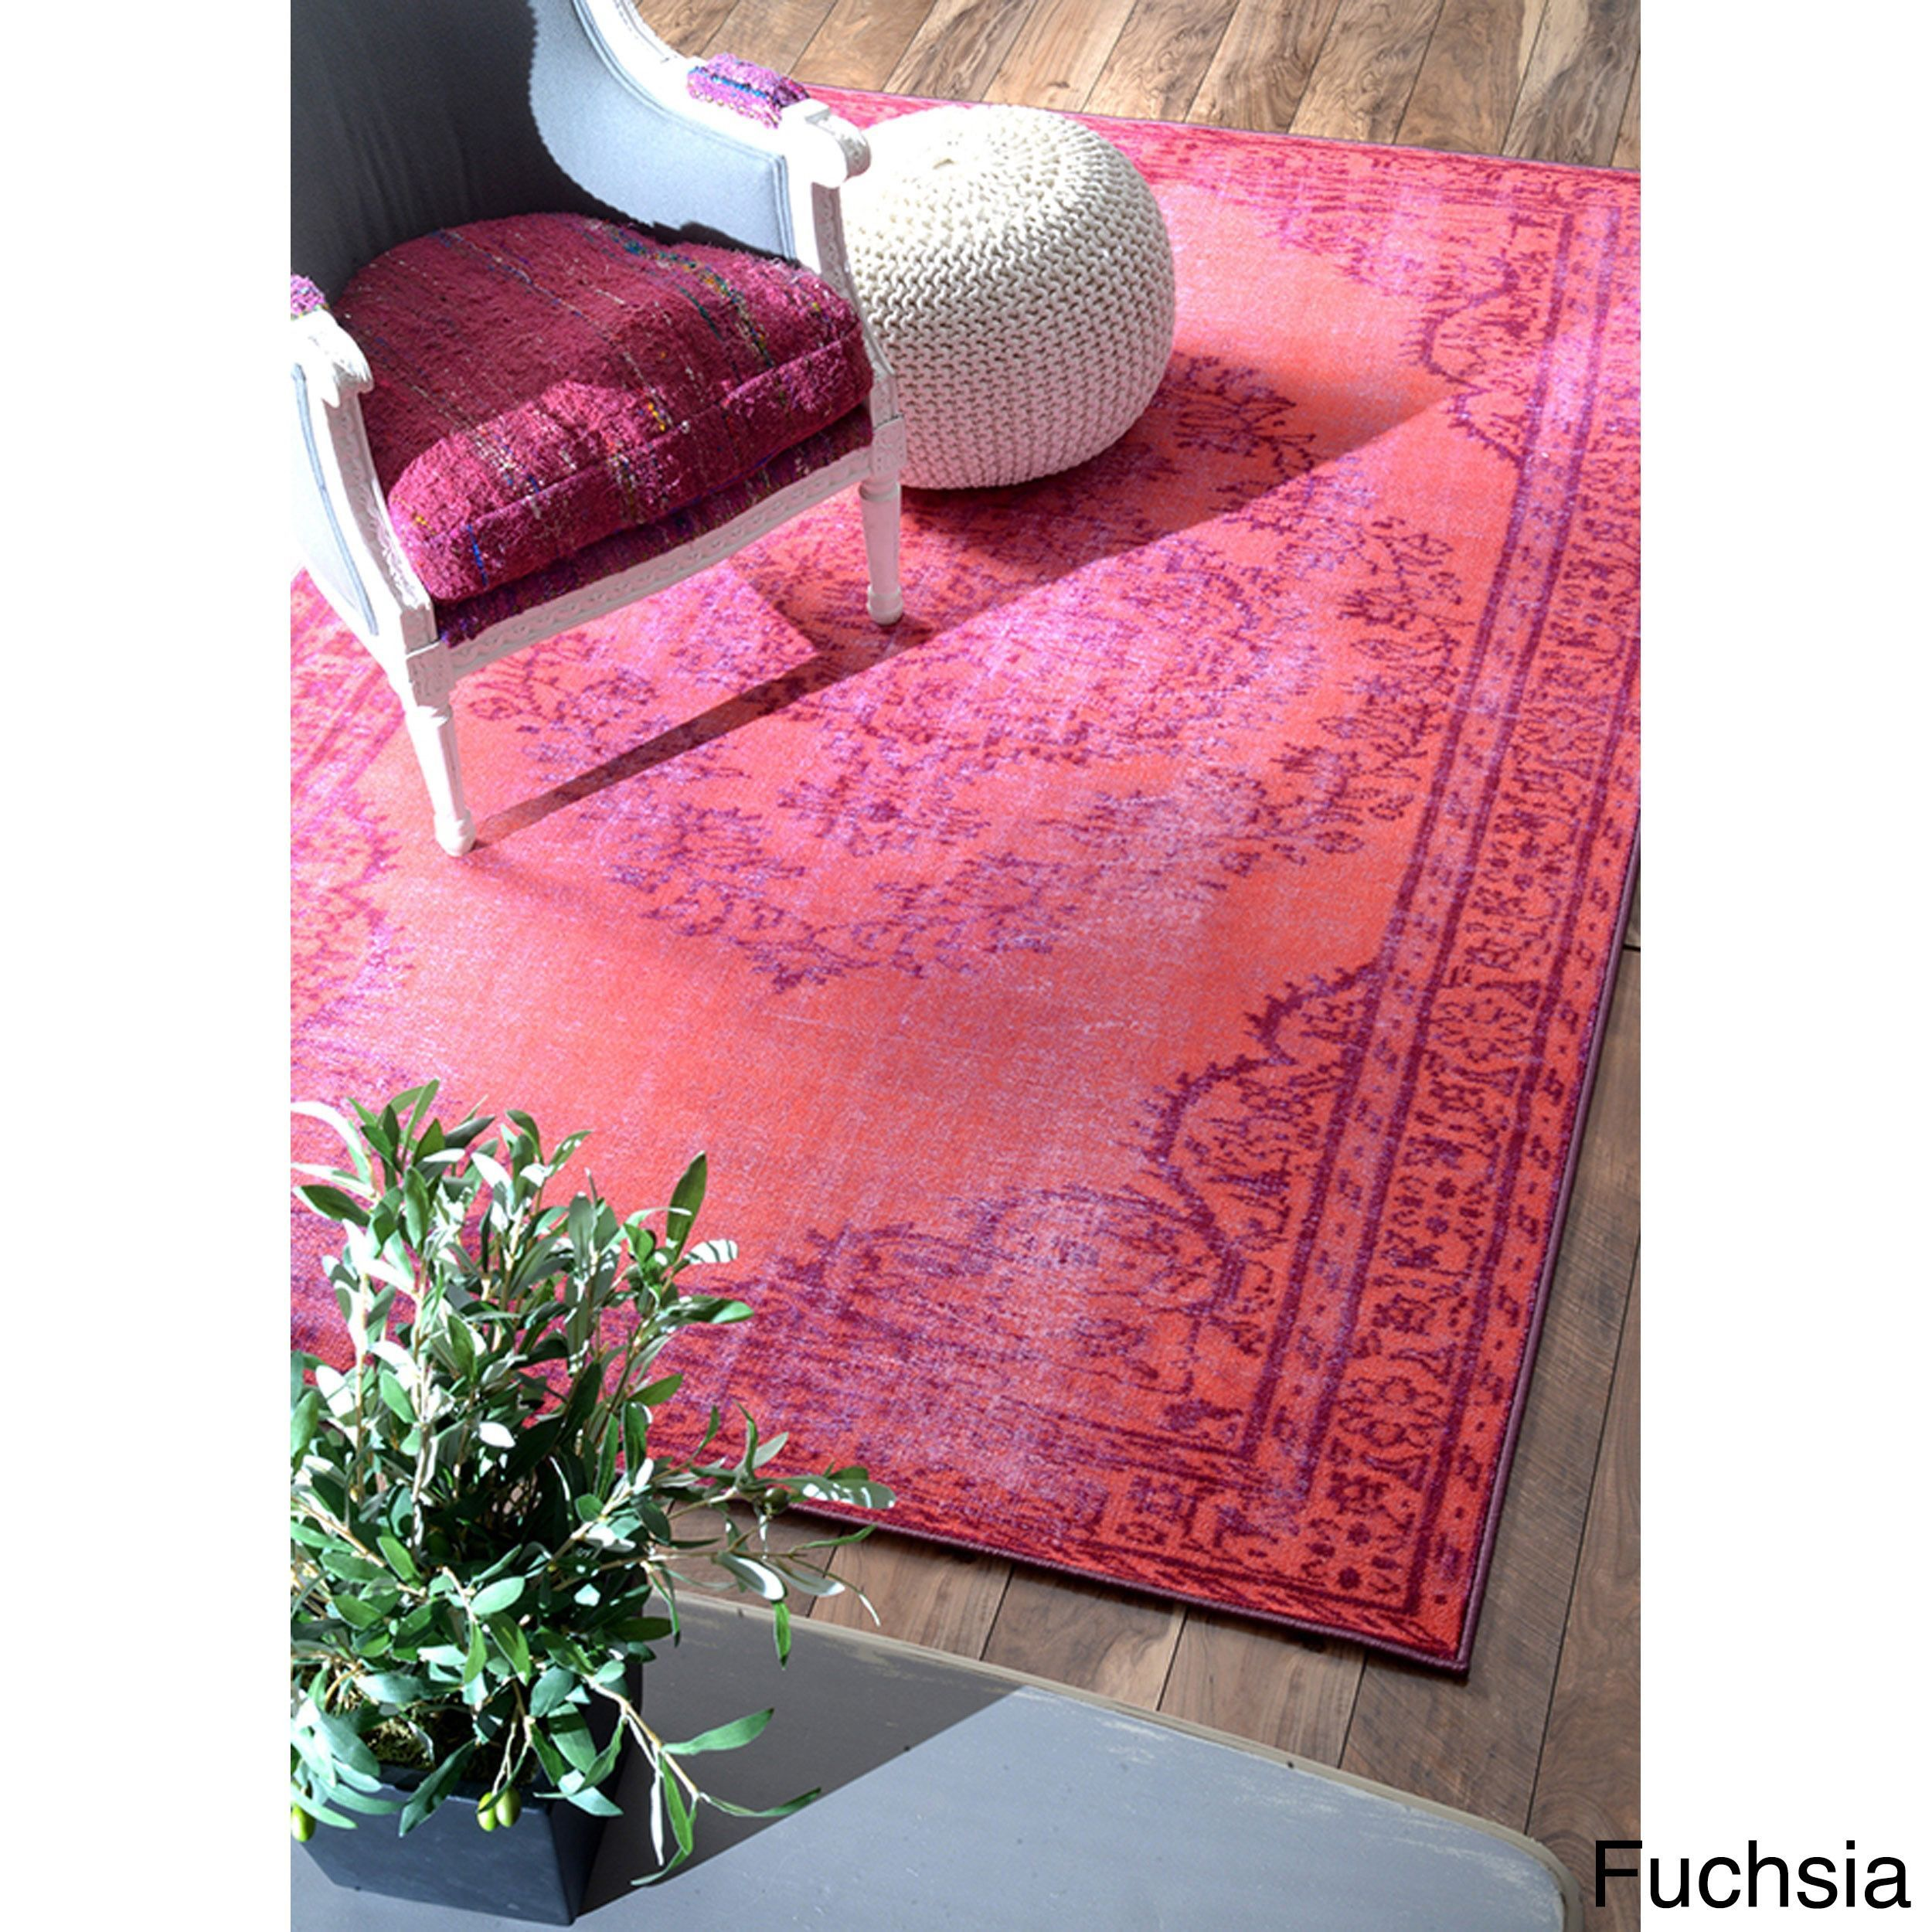 Nuloom Vintage Inspired Overdyed Rug 8 X 10 Fuschia Pink Size Synthetic Fiber Oriental